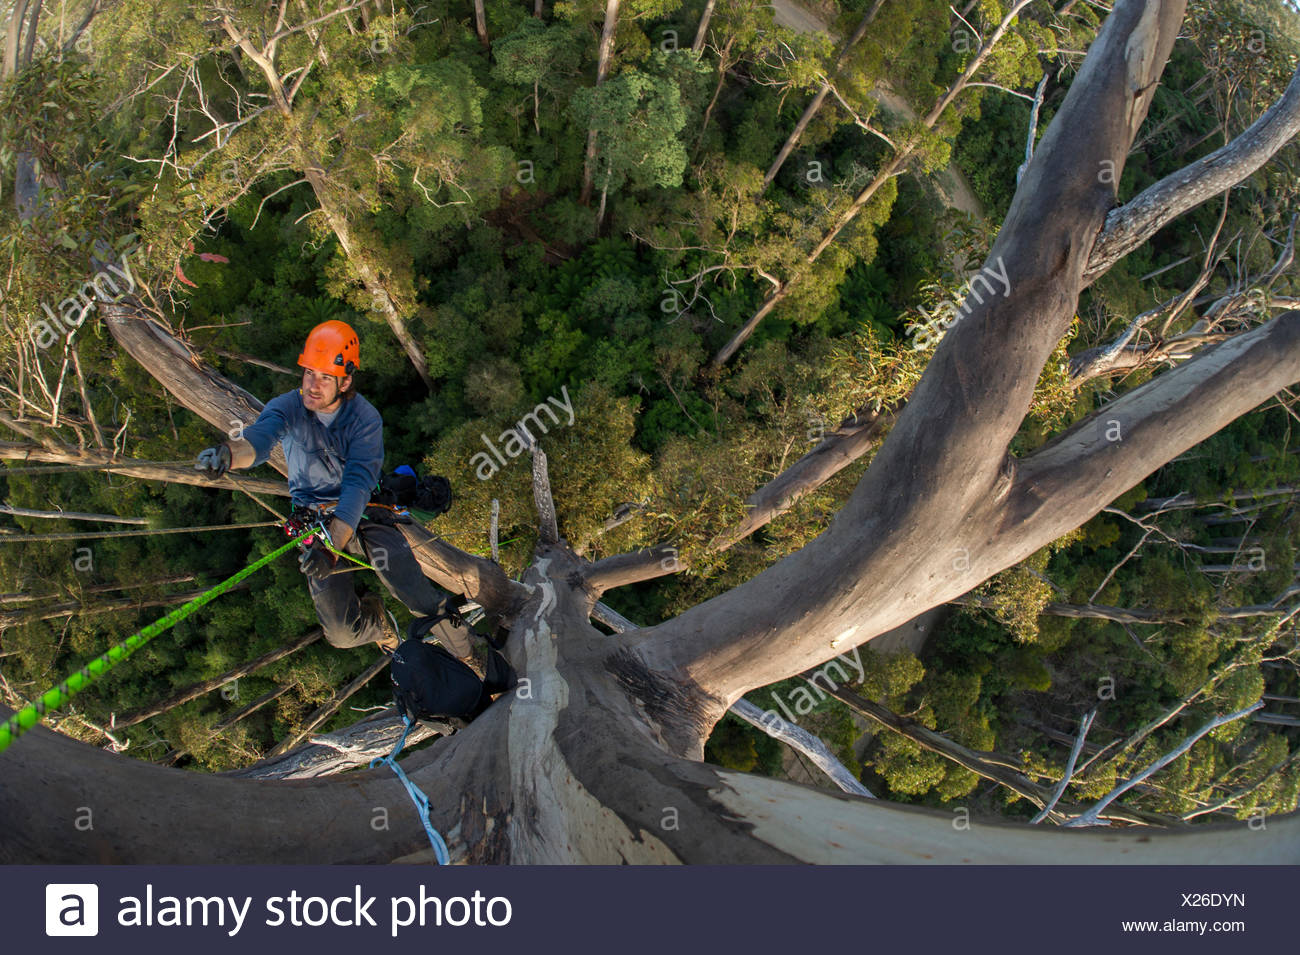 A scientist ascending a fixed rope in a 70 meter tall Eucalyptus regnans in Wielangta State Forest, Tasmania. - Stock Image